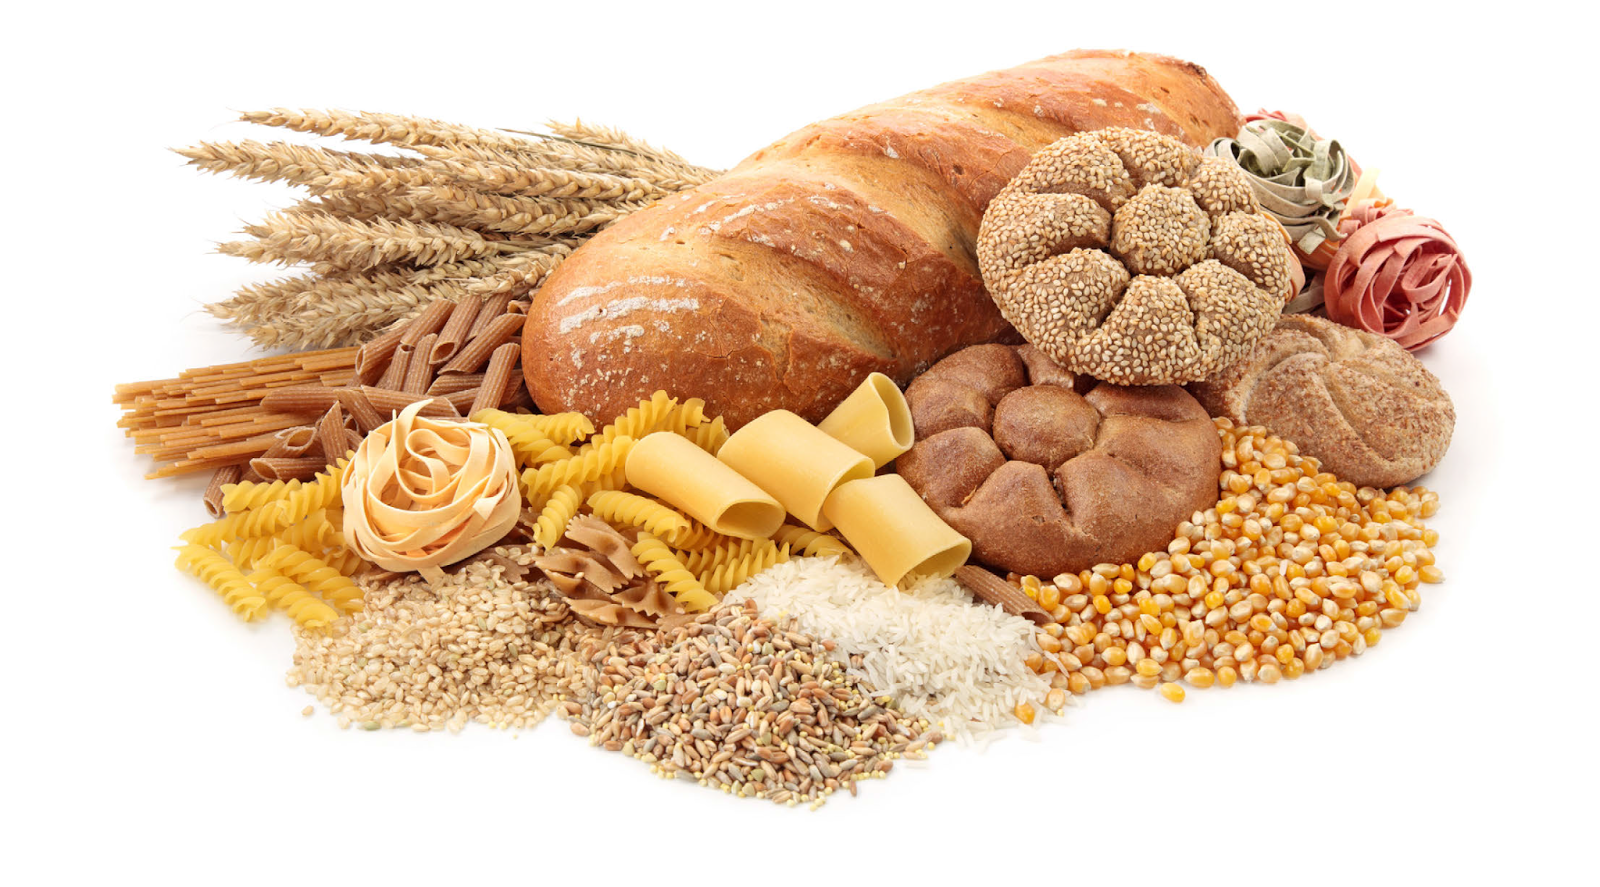 Pie Hole Blogger: Dietary Guidelines: Better Late than Never